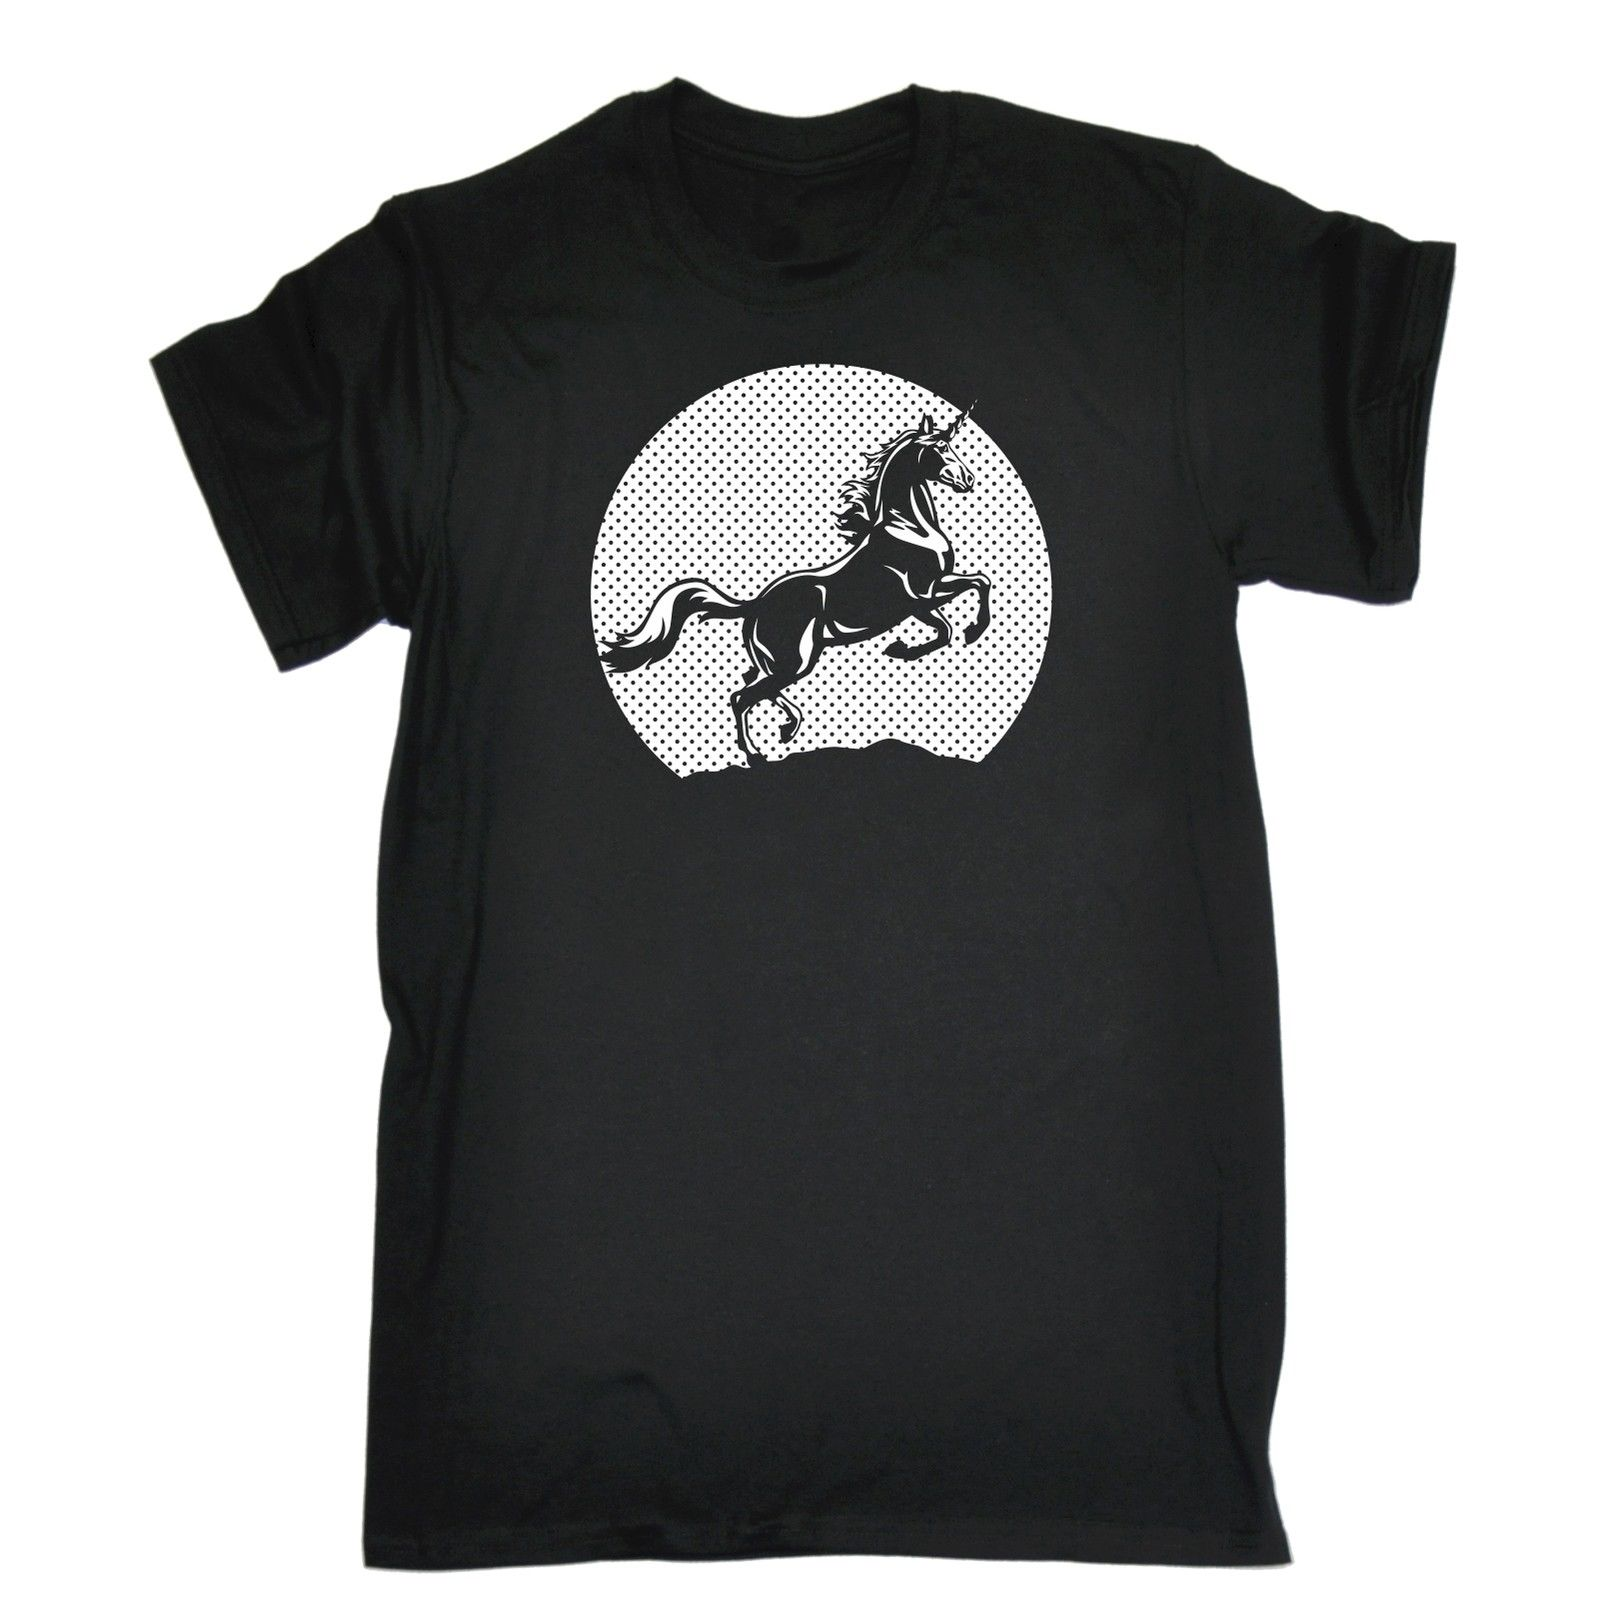 Sunset Unicorn MENS T-SHIRT Horse Magical Funny Birthday Gift Present Him New T Shirts Unisex Funny Tops Tee Anime